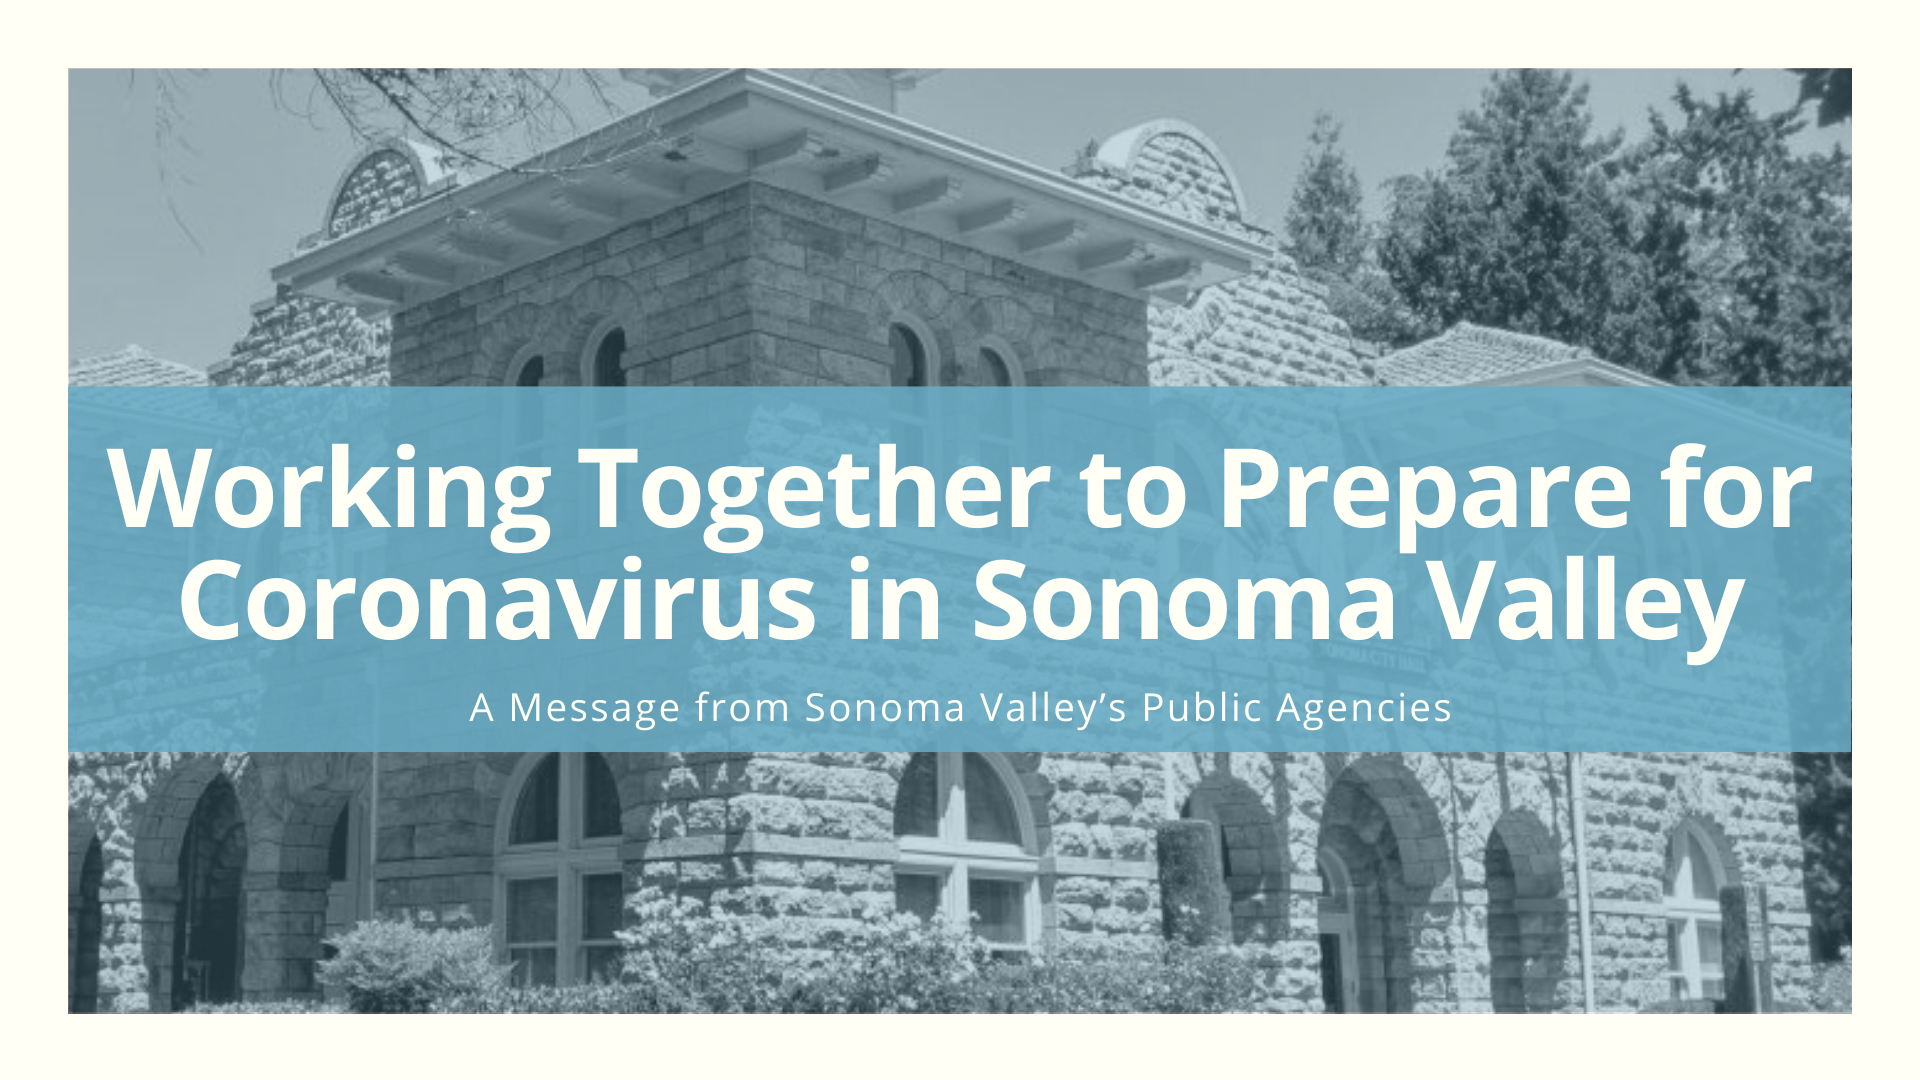 Working Together to Prepare for Coronavirus in Sonoma Valley